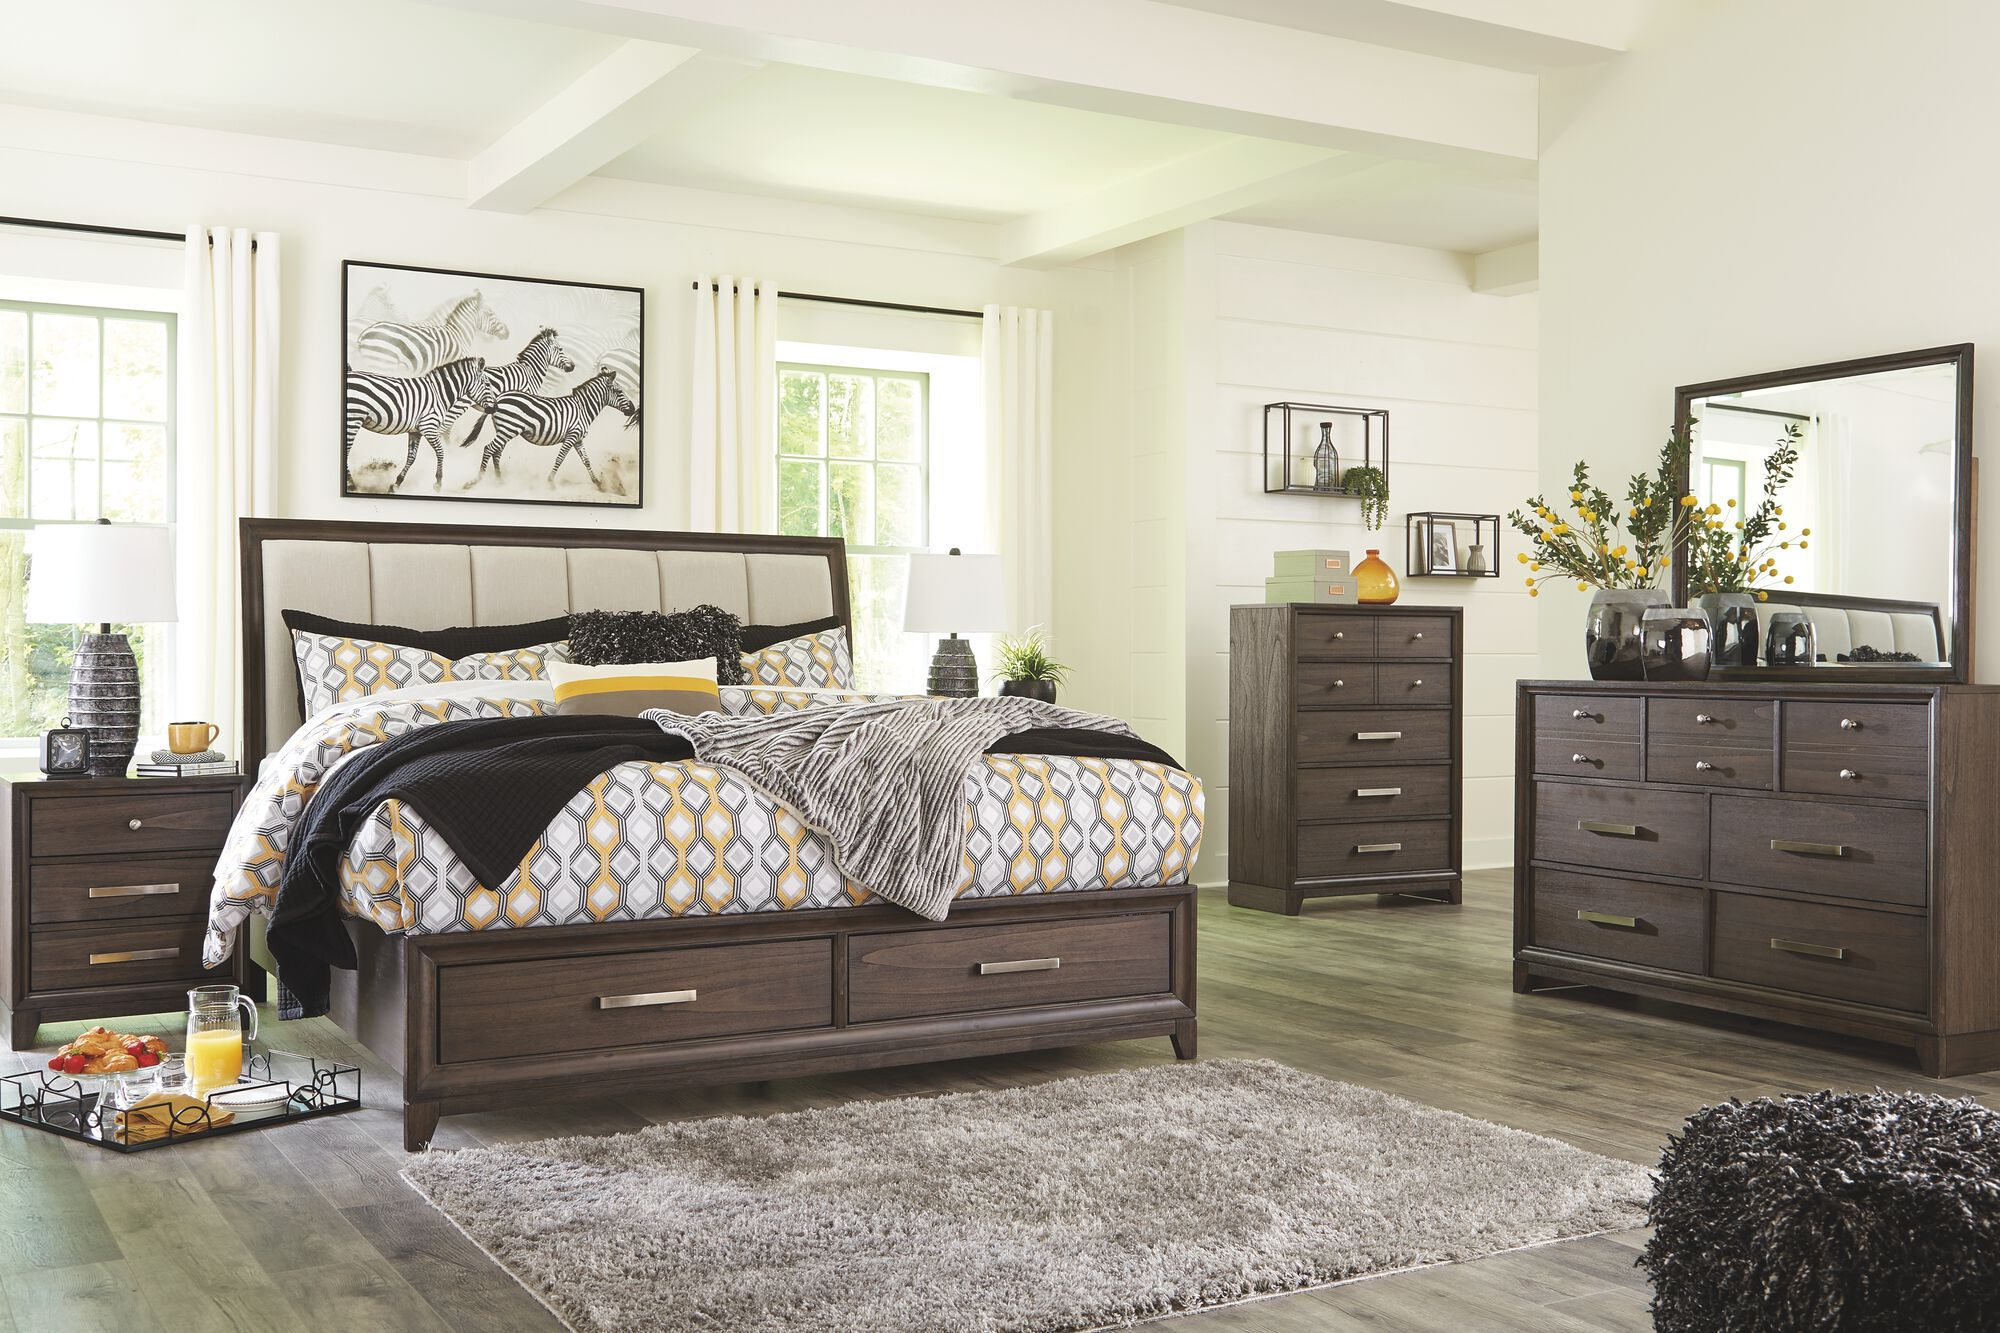 Brueban Rich Brown 8 Pc Dresser Mirror Chest King Panel Bed With 2 Storage Drawers 2 Nightstands Mathis Brothers Furniture